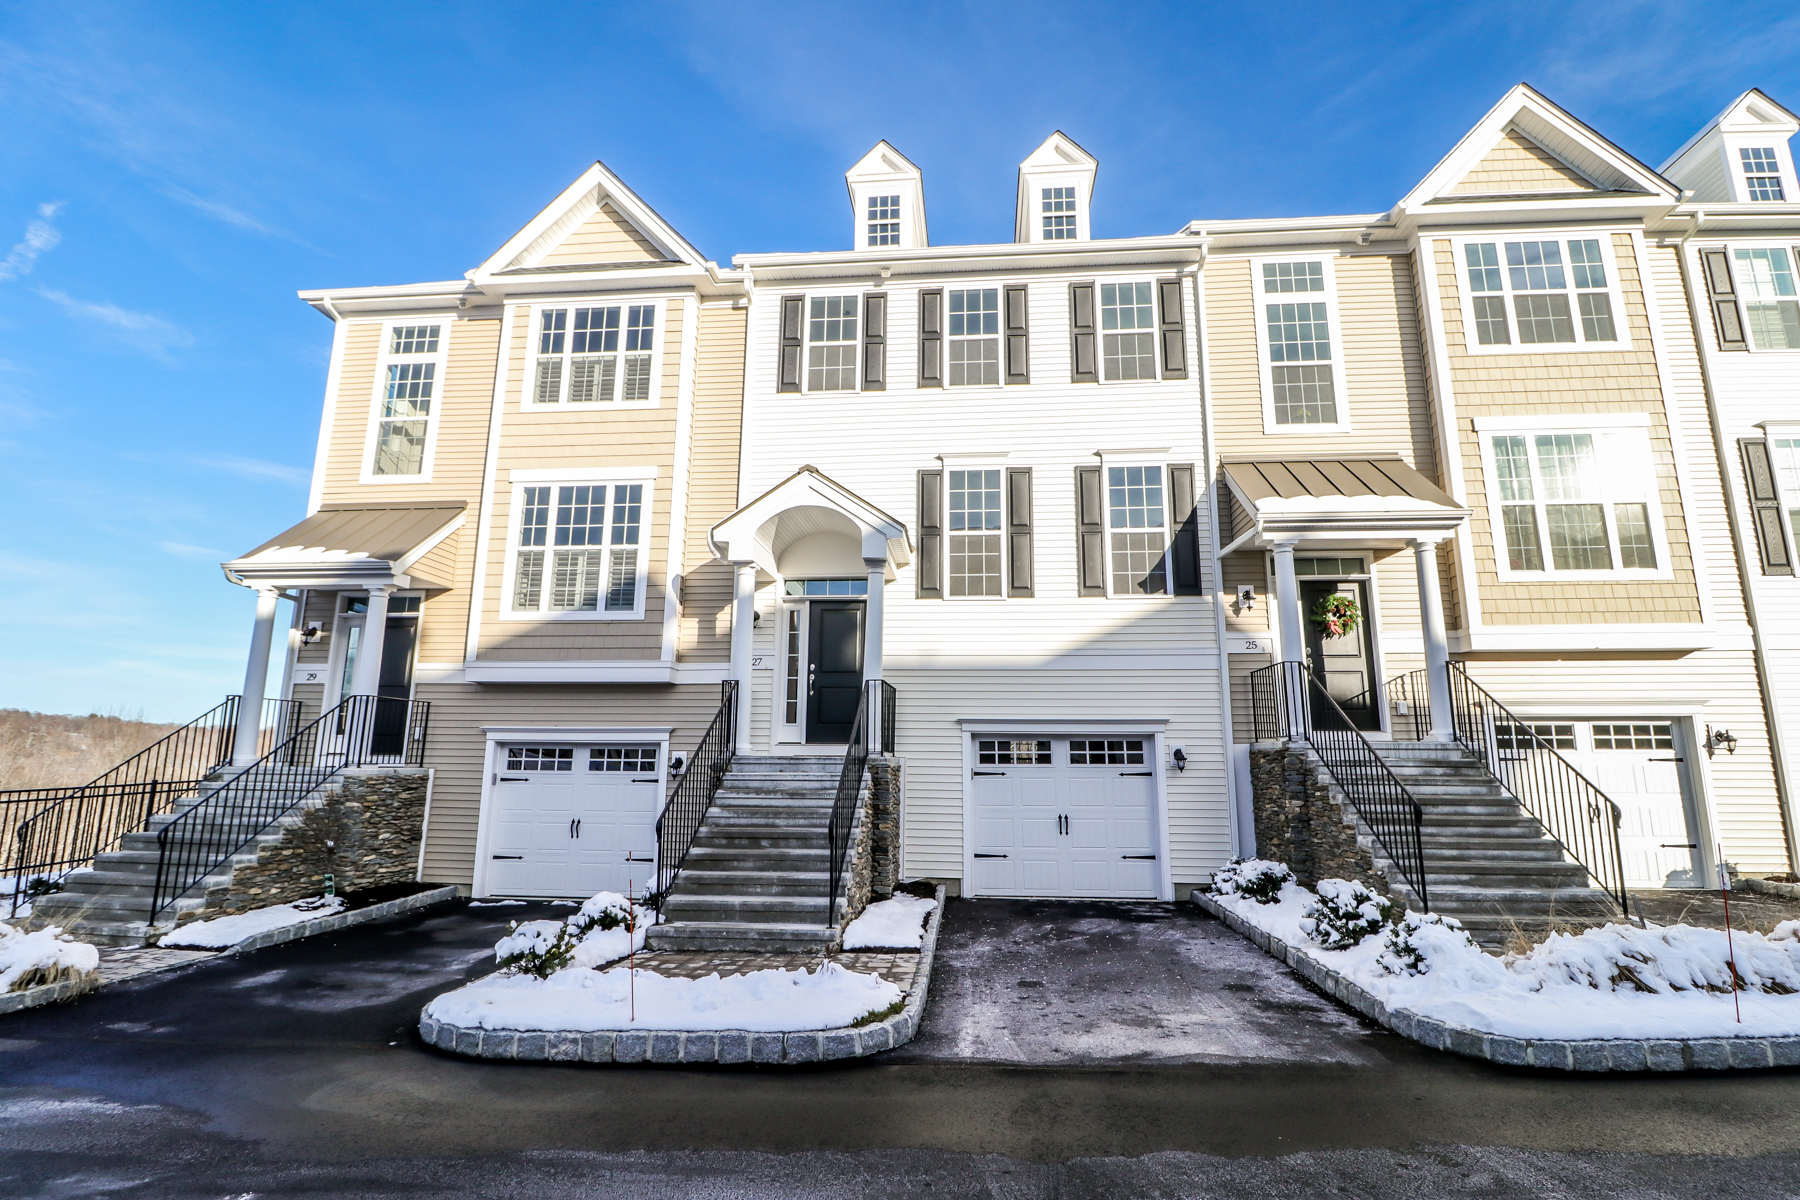 townhouses for Sale at Exceptional Amenities And A Convenient Location 27 Putnam Lane 27, Danbury, Connecticut 06810 United States